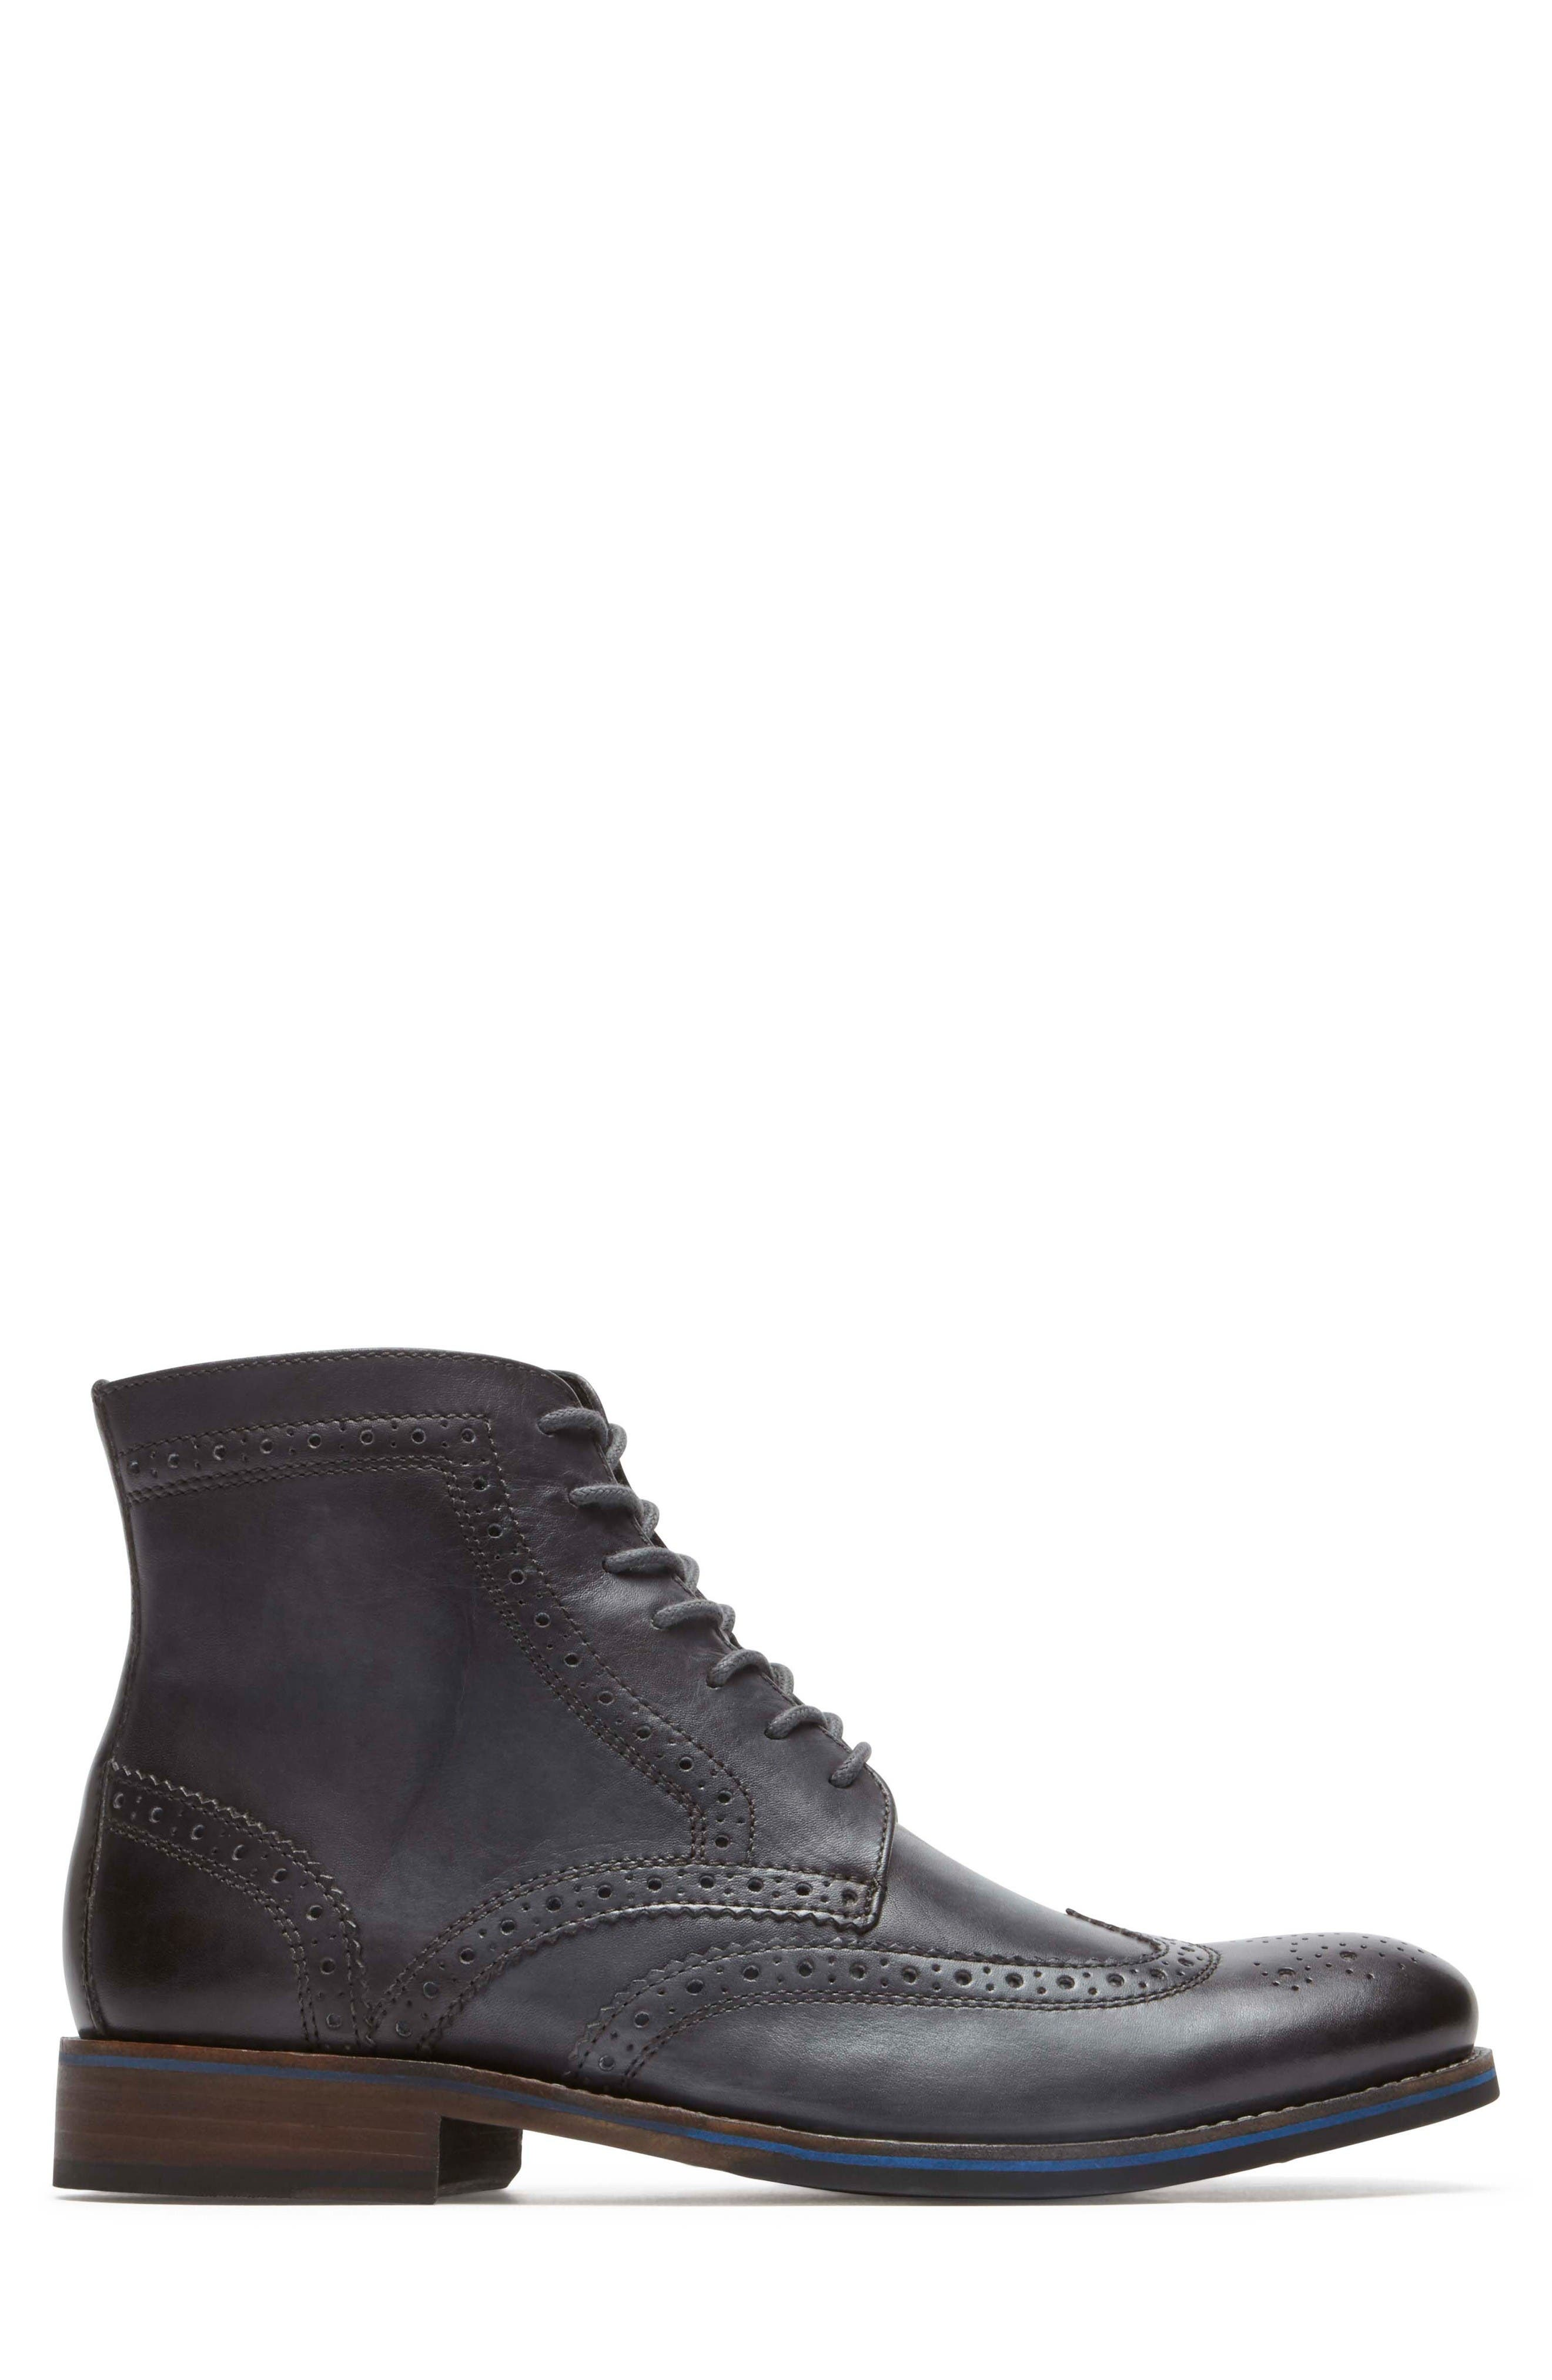 Wyat Wingtip Boot,                             Alternate thumbnail 3, color,                             Dark Shadow Leather